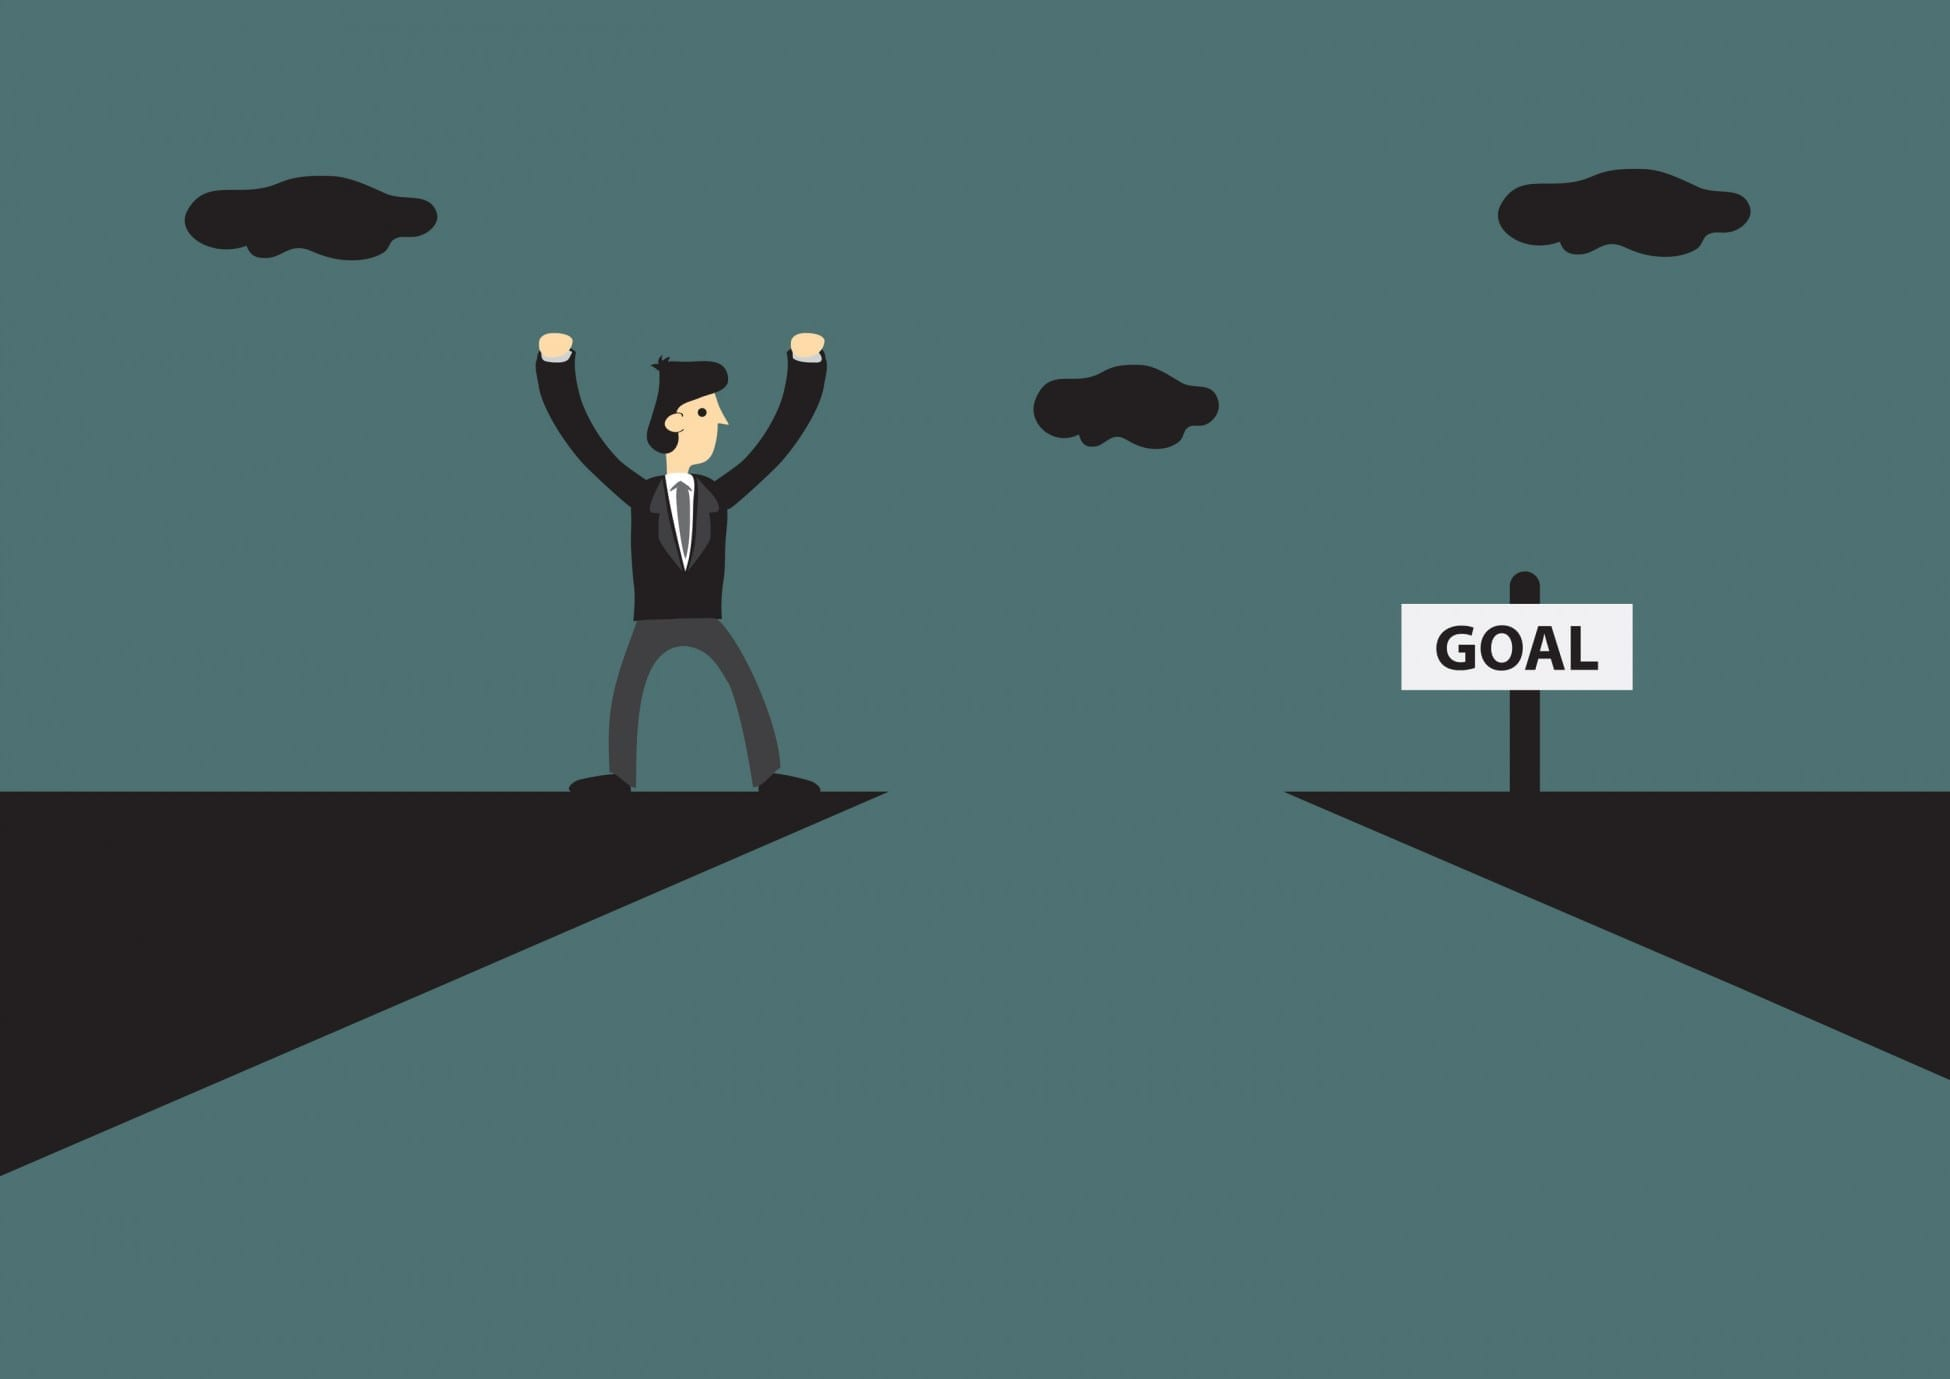 Cartoon businessman standing on edge of mountain cliff, trying to reach his goal on the other side. Vector illustration for business metaphor on how to reach your goal green background.